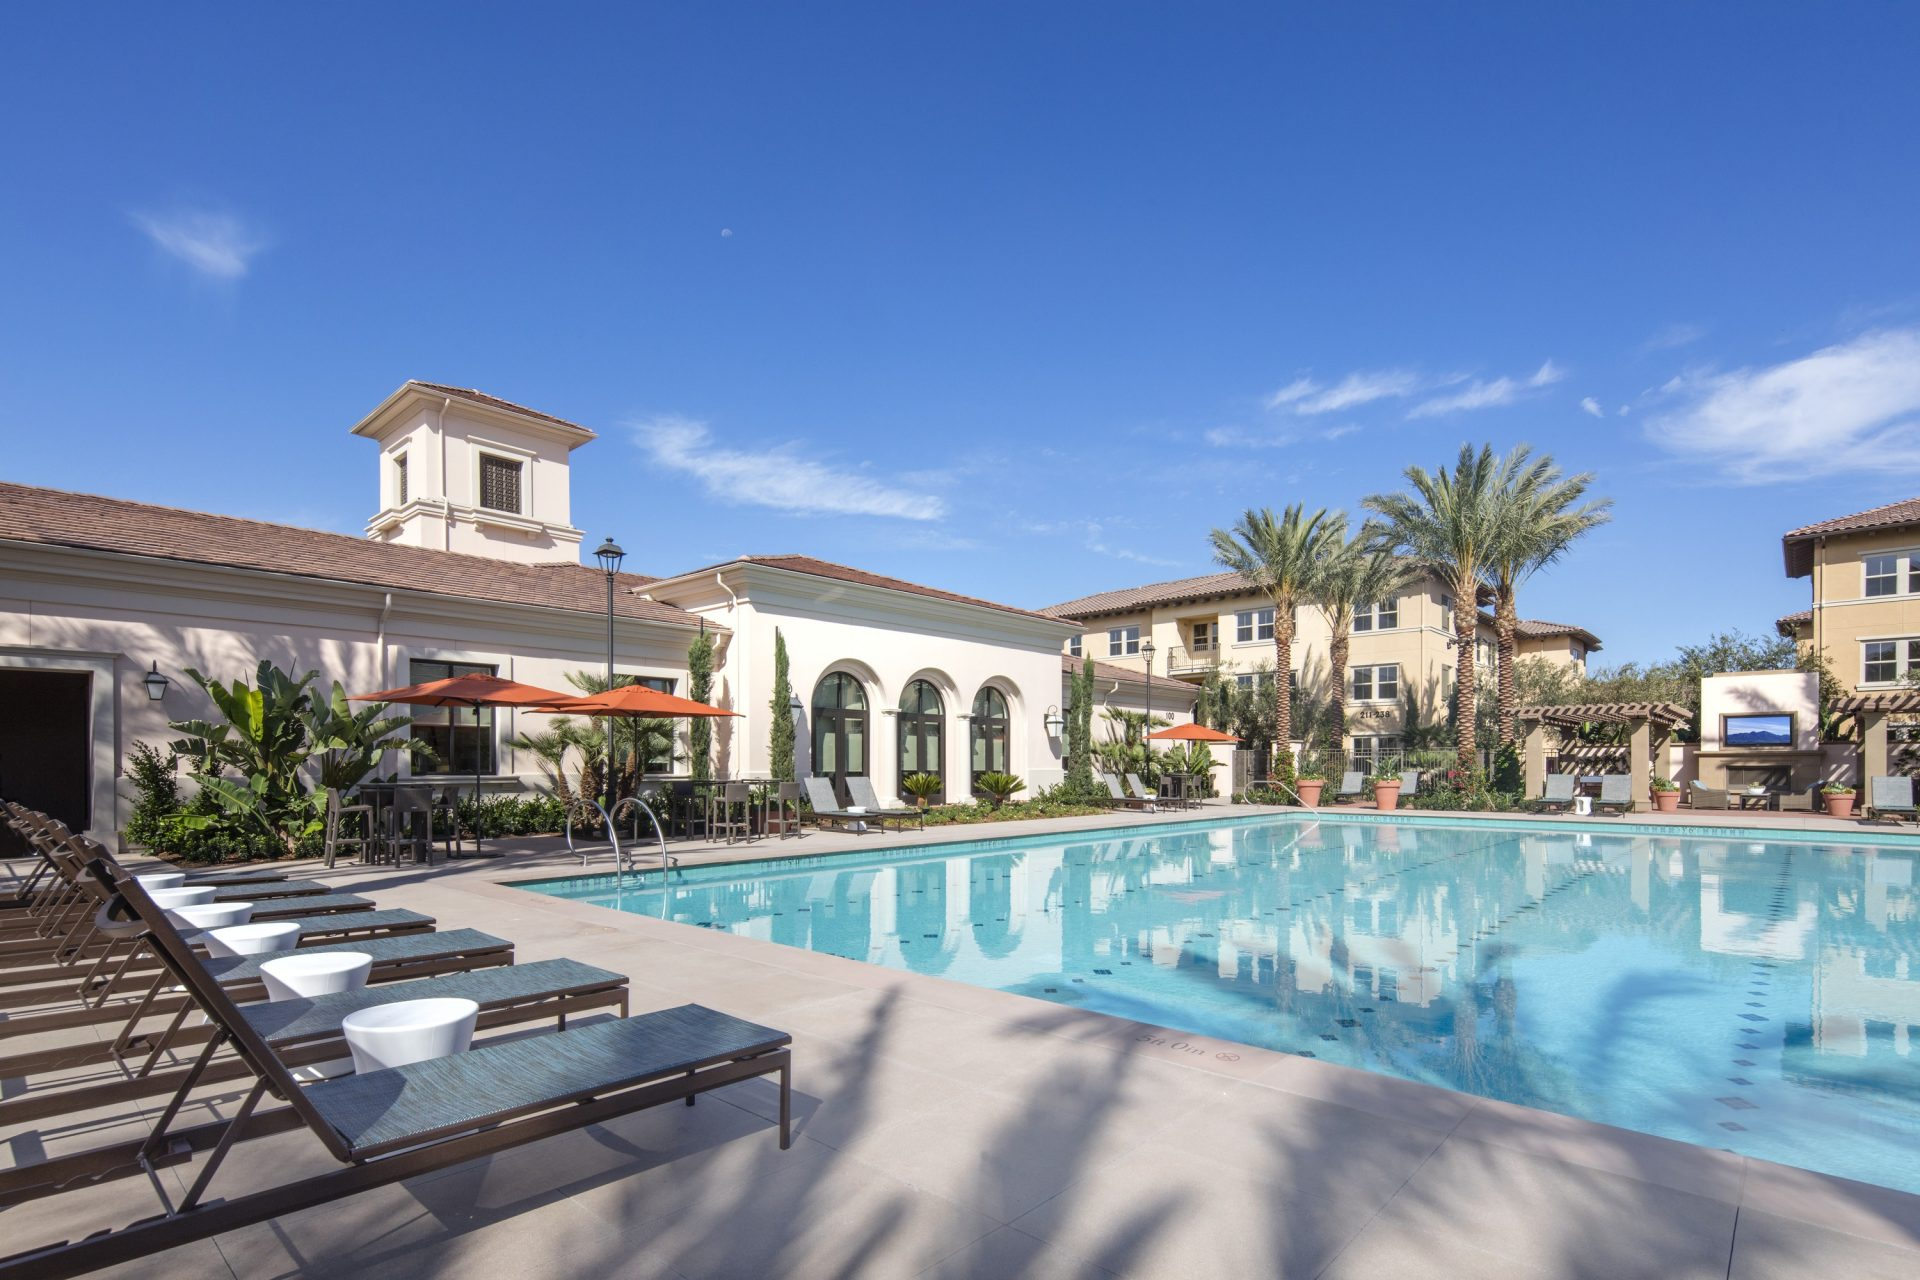 Pool view of Portola Court Apartment Homes in Irvine.